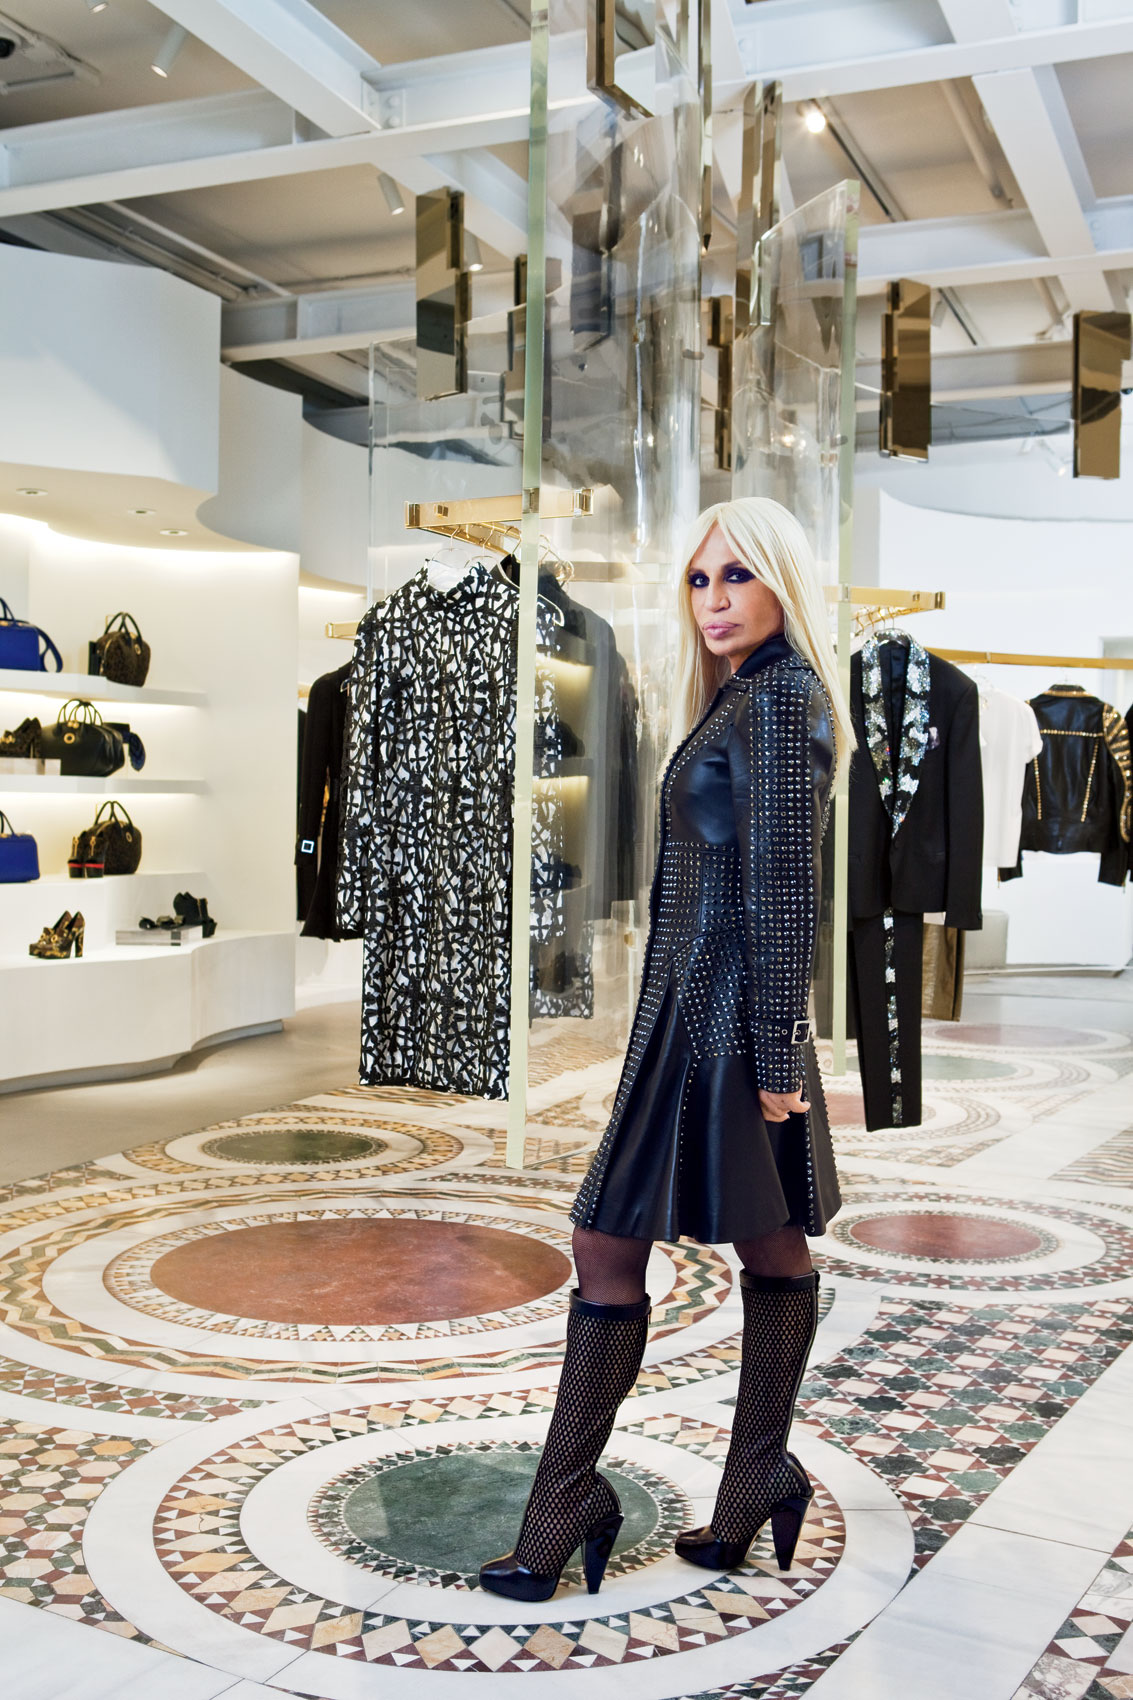 Iconic Portrait of Donatella Versace in New York City by top celebrity photographer Michael Weschler